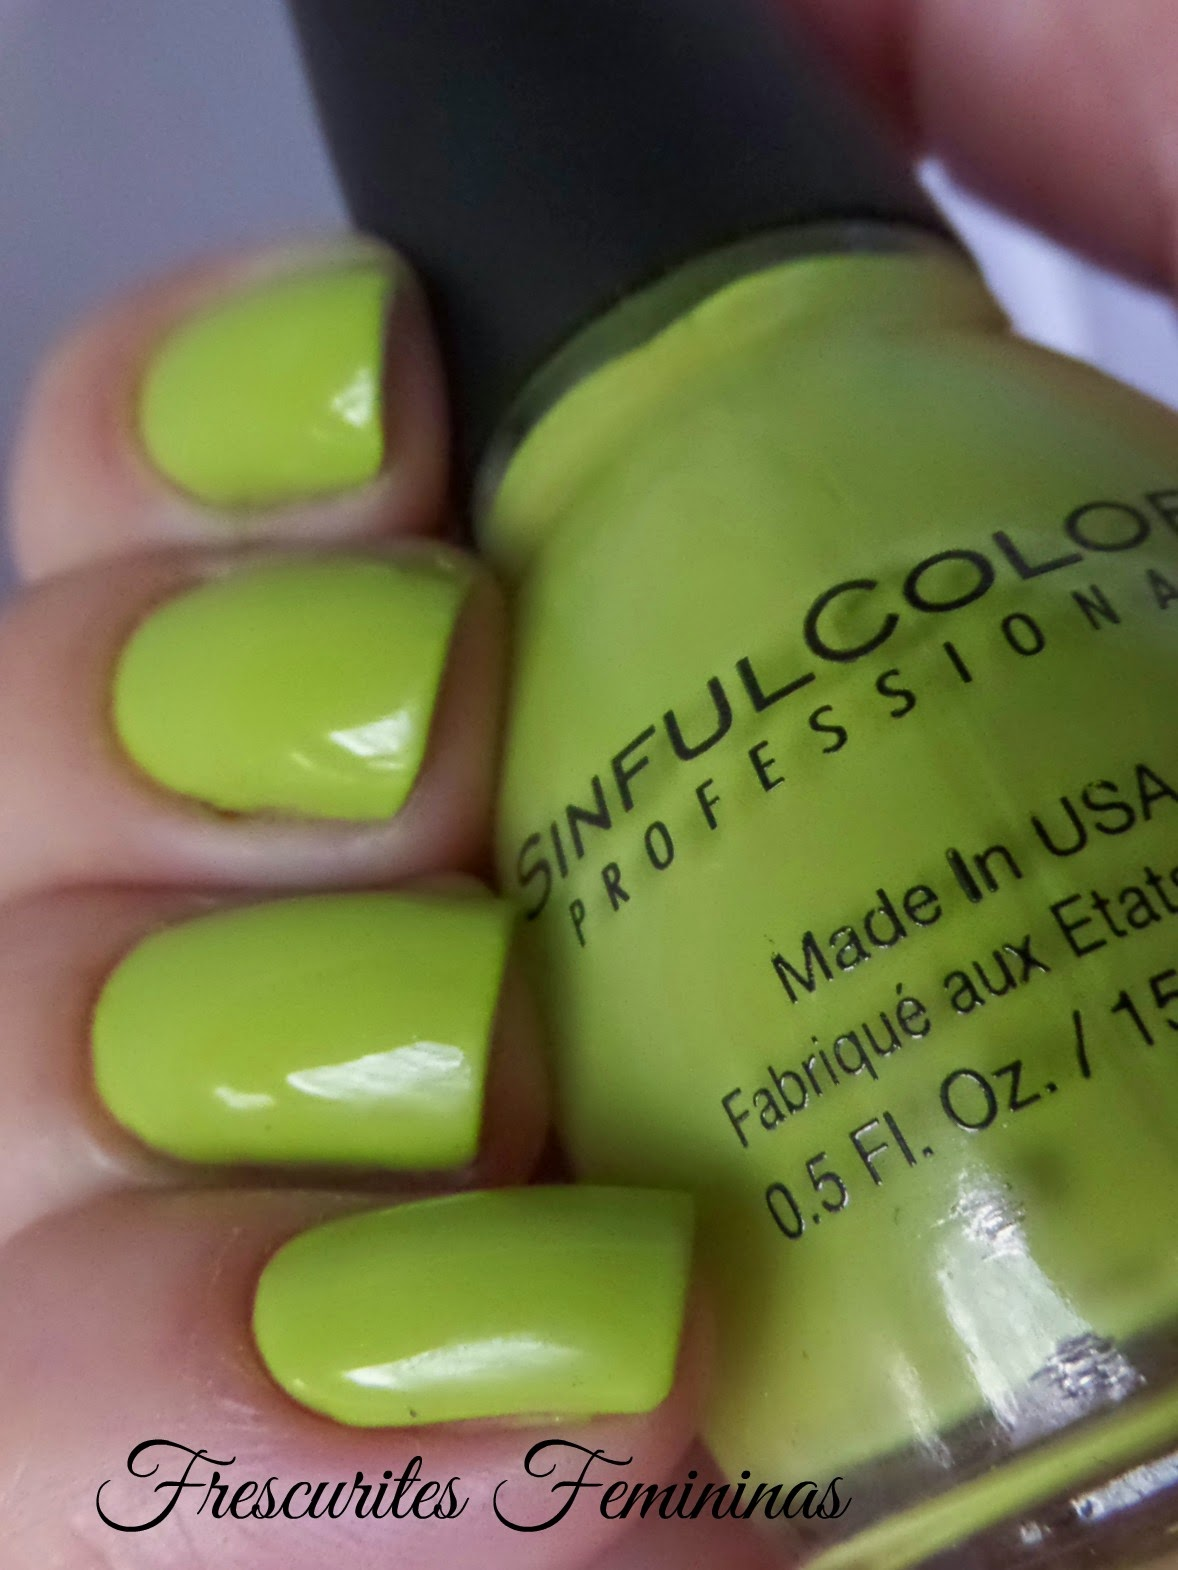 Sinful, Colors, Innocent, Verde, Nail, Polish, Esmalte, sinful colors, Sinful colors innocent, innocent sinful colors